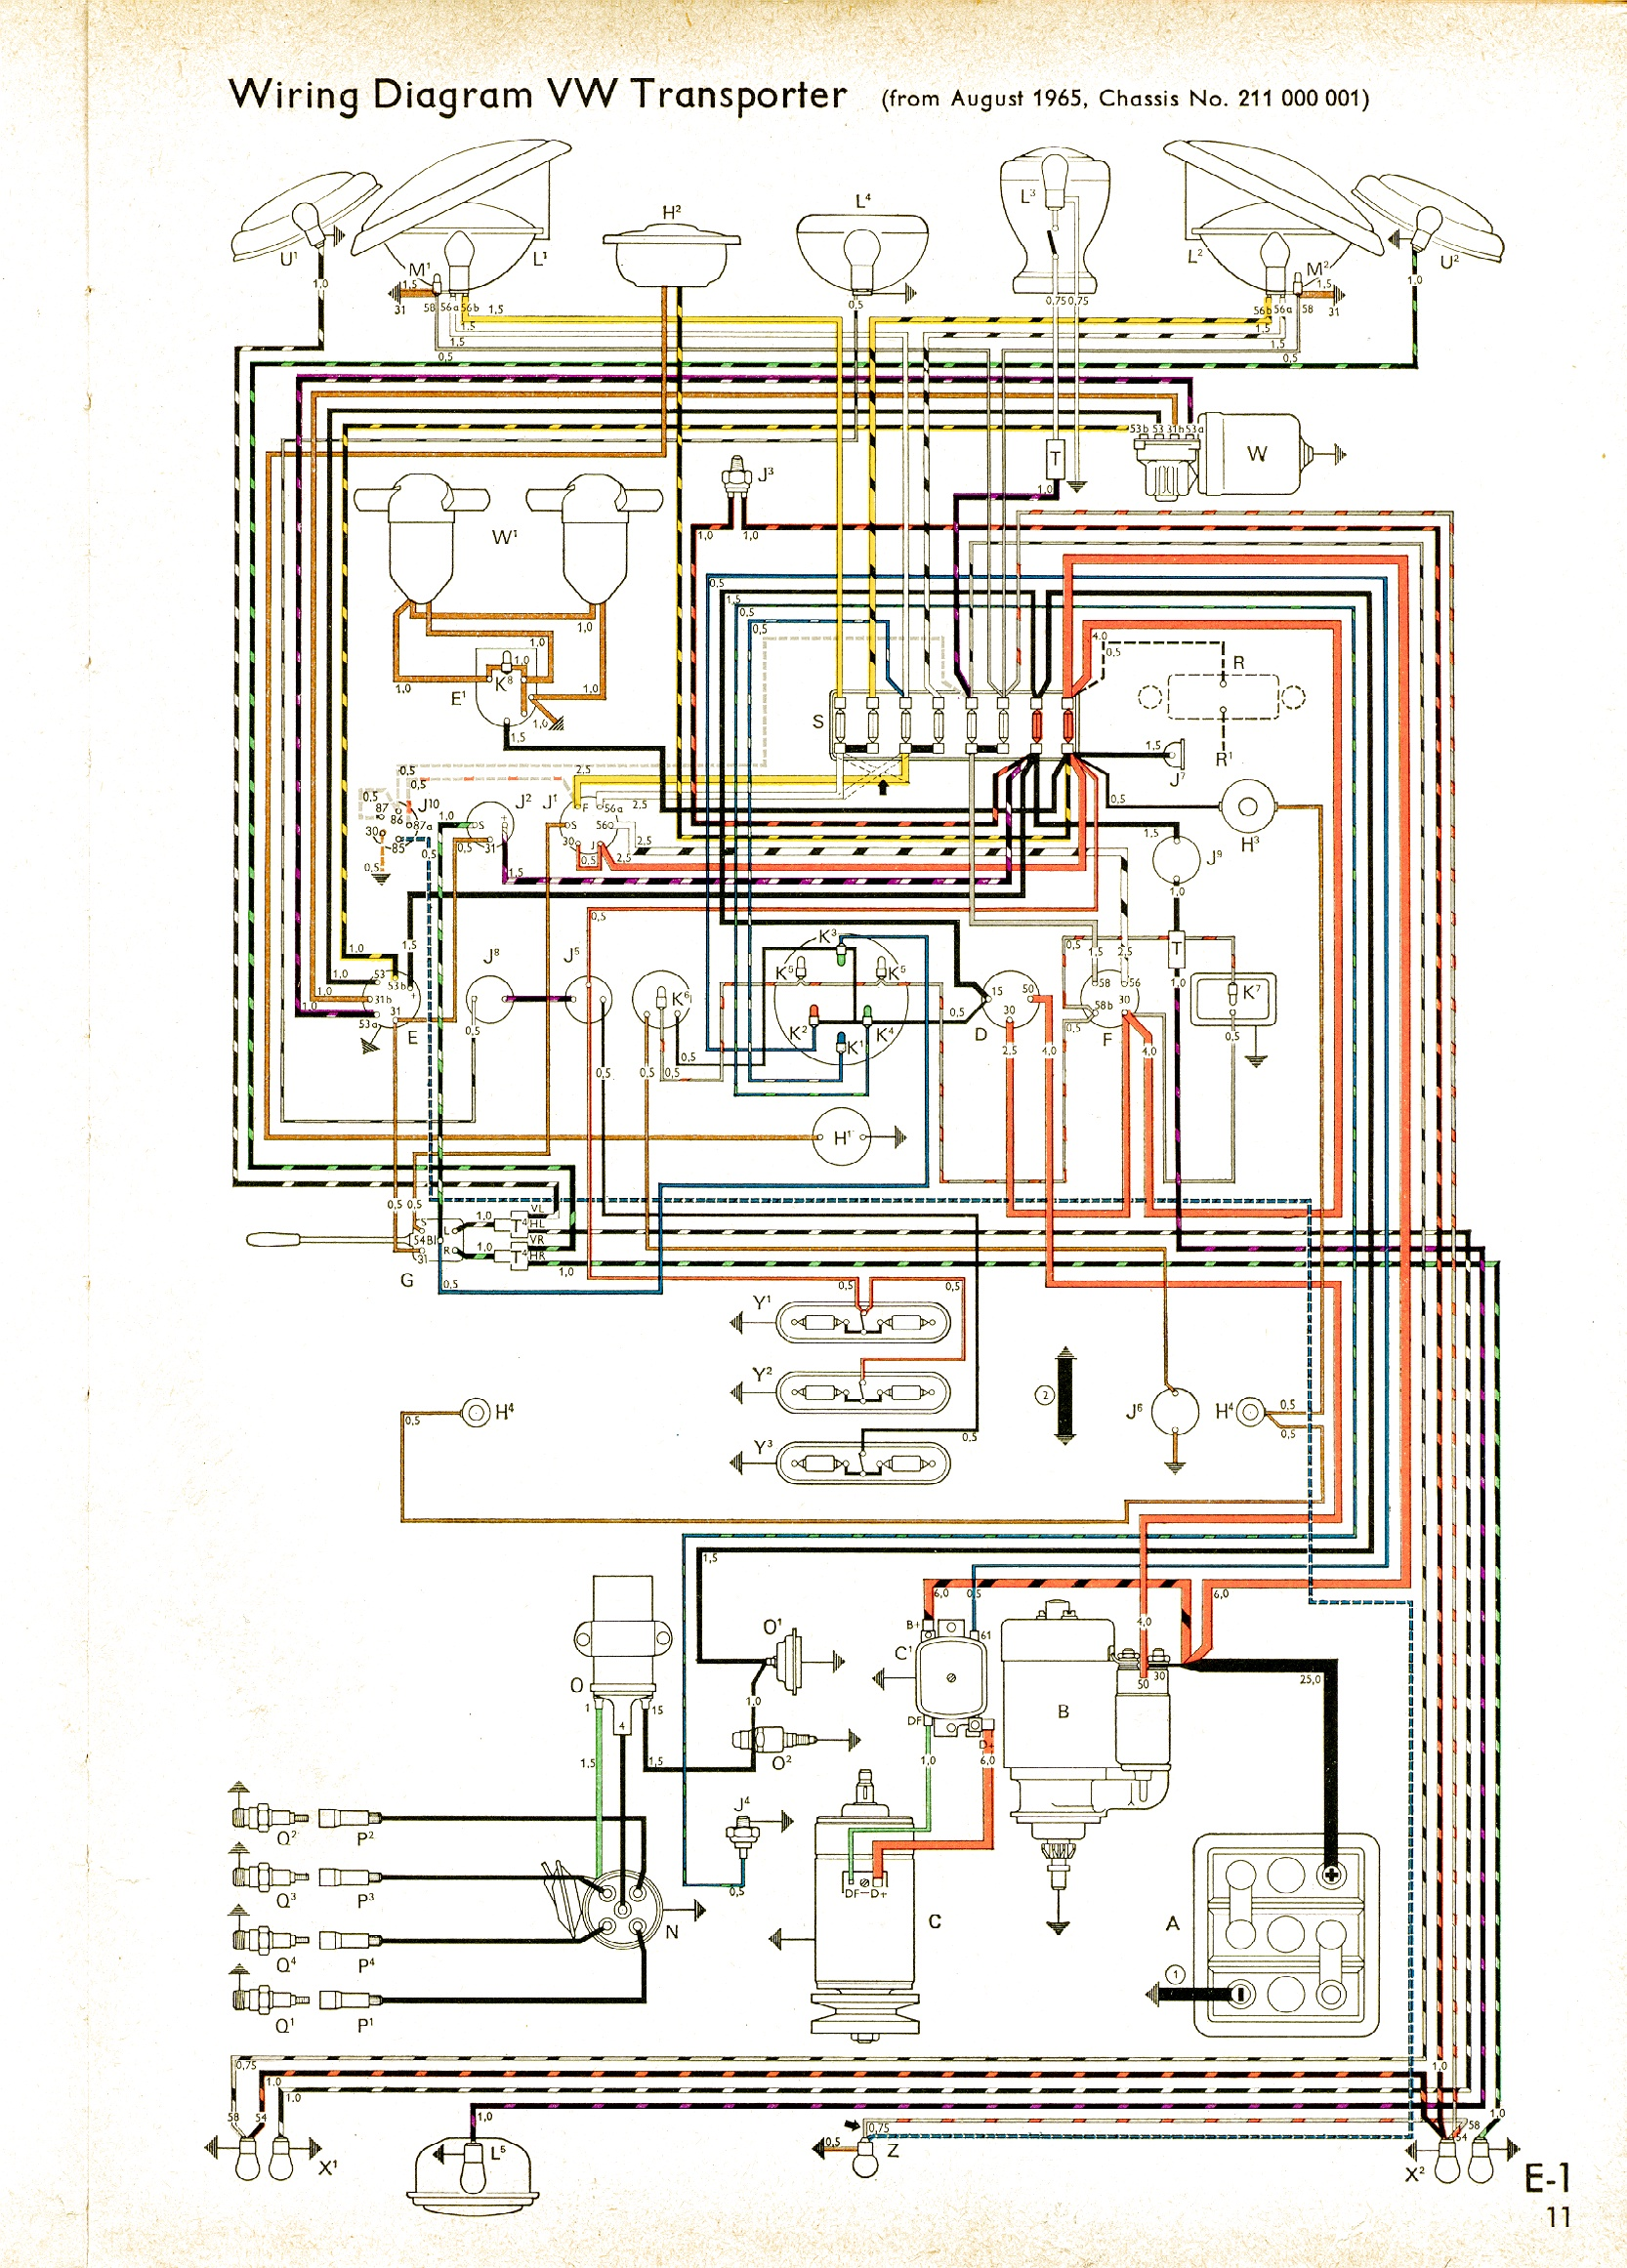 Astonishing Vw Type 2 Wiring Diagram Wiring Library Ranpur Mohammedshrine Wiring Digital Resources Ranpurmohammedshrineorg